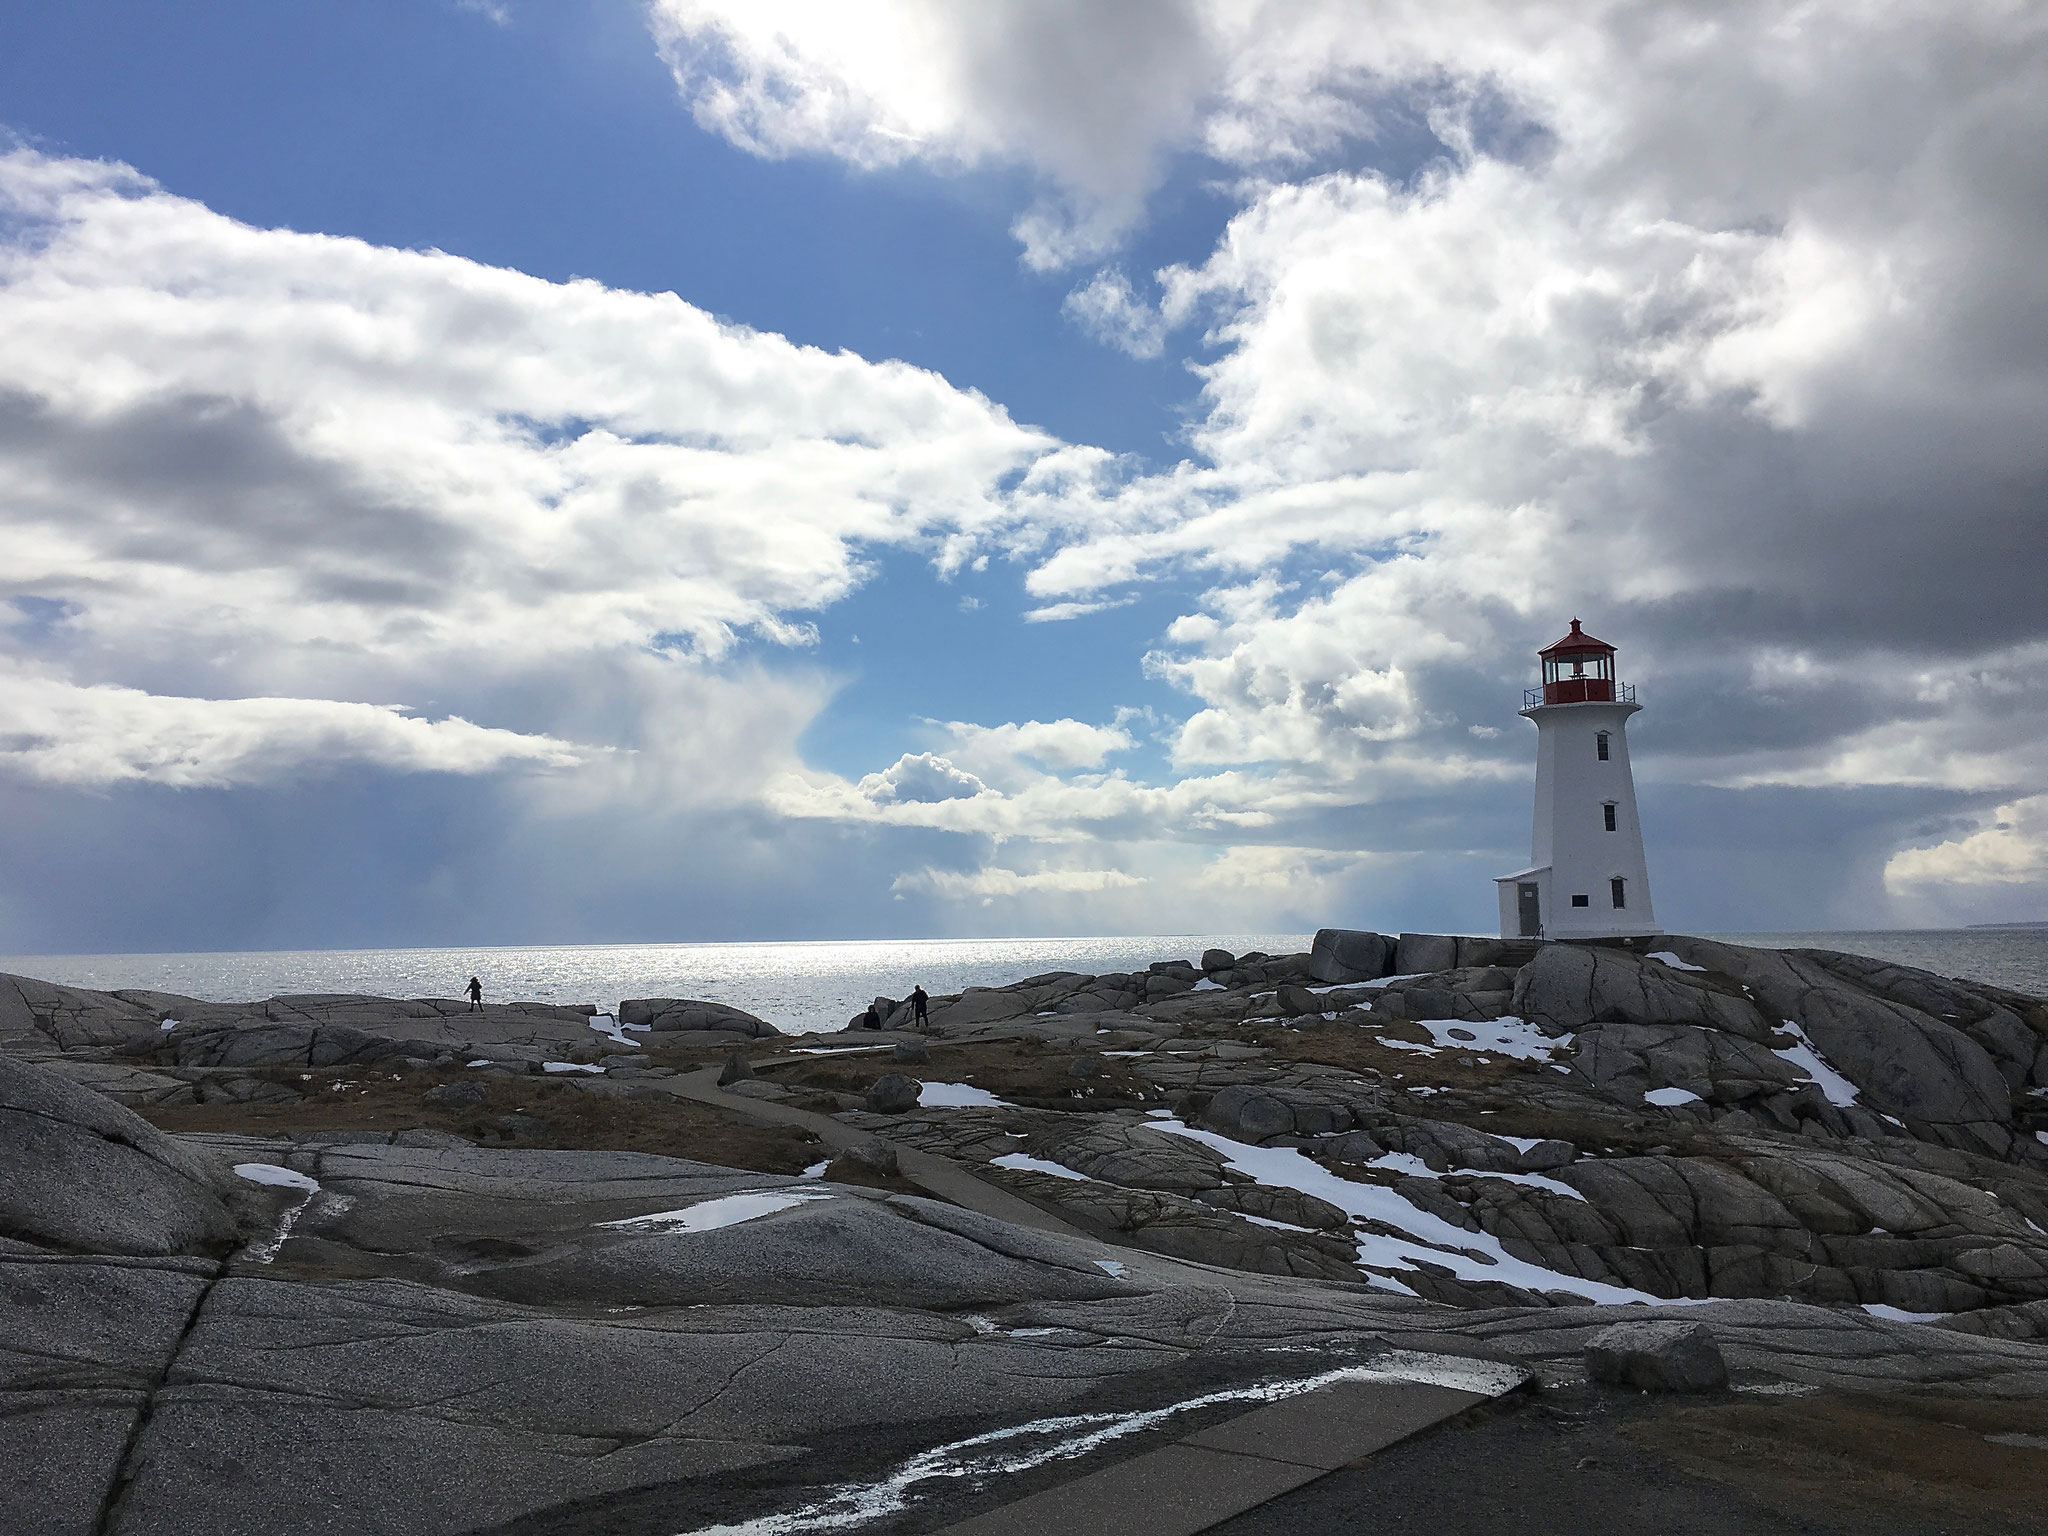 Peggy's Cove, Nova Scotia, Canada, March 2018